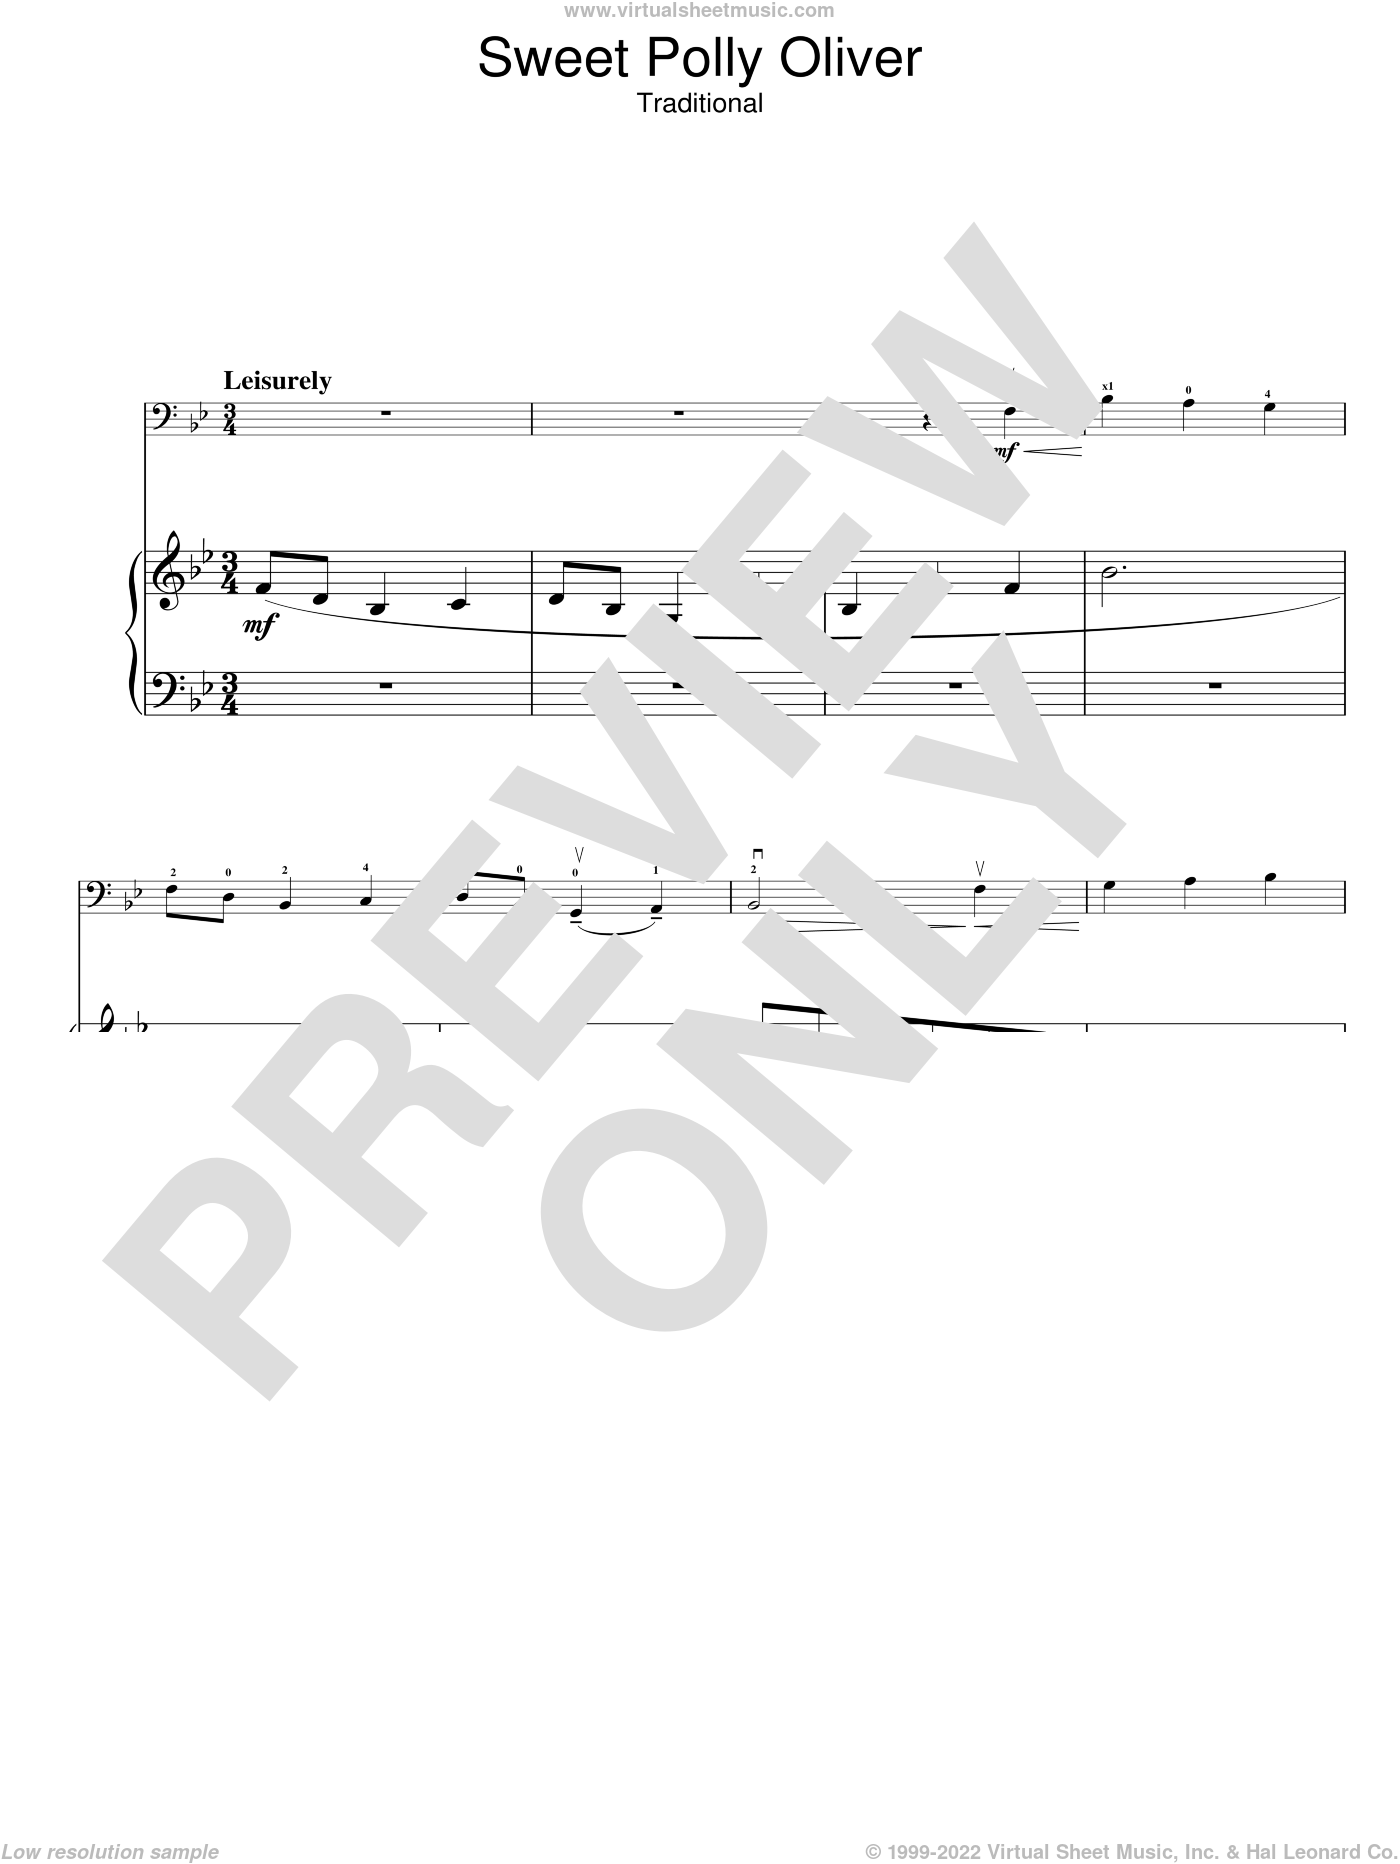 Sweet Polly Oliver sheet music for voice, piano or guitar. Score Image Preview.